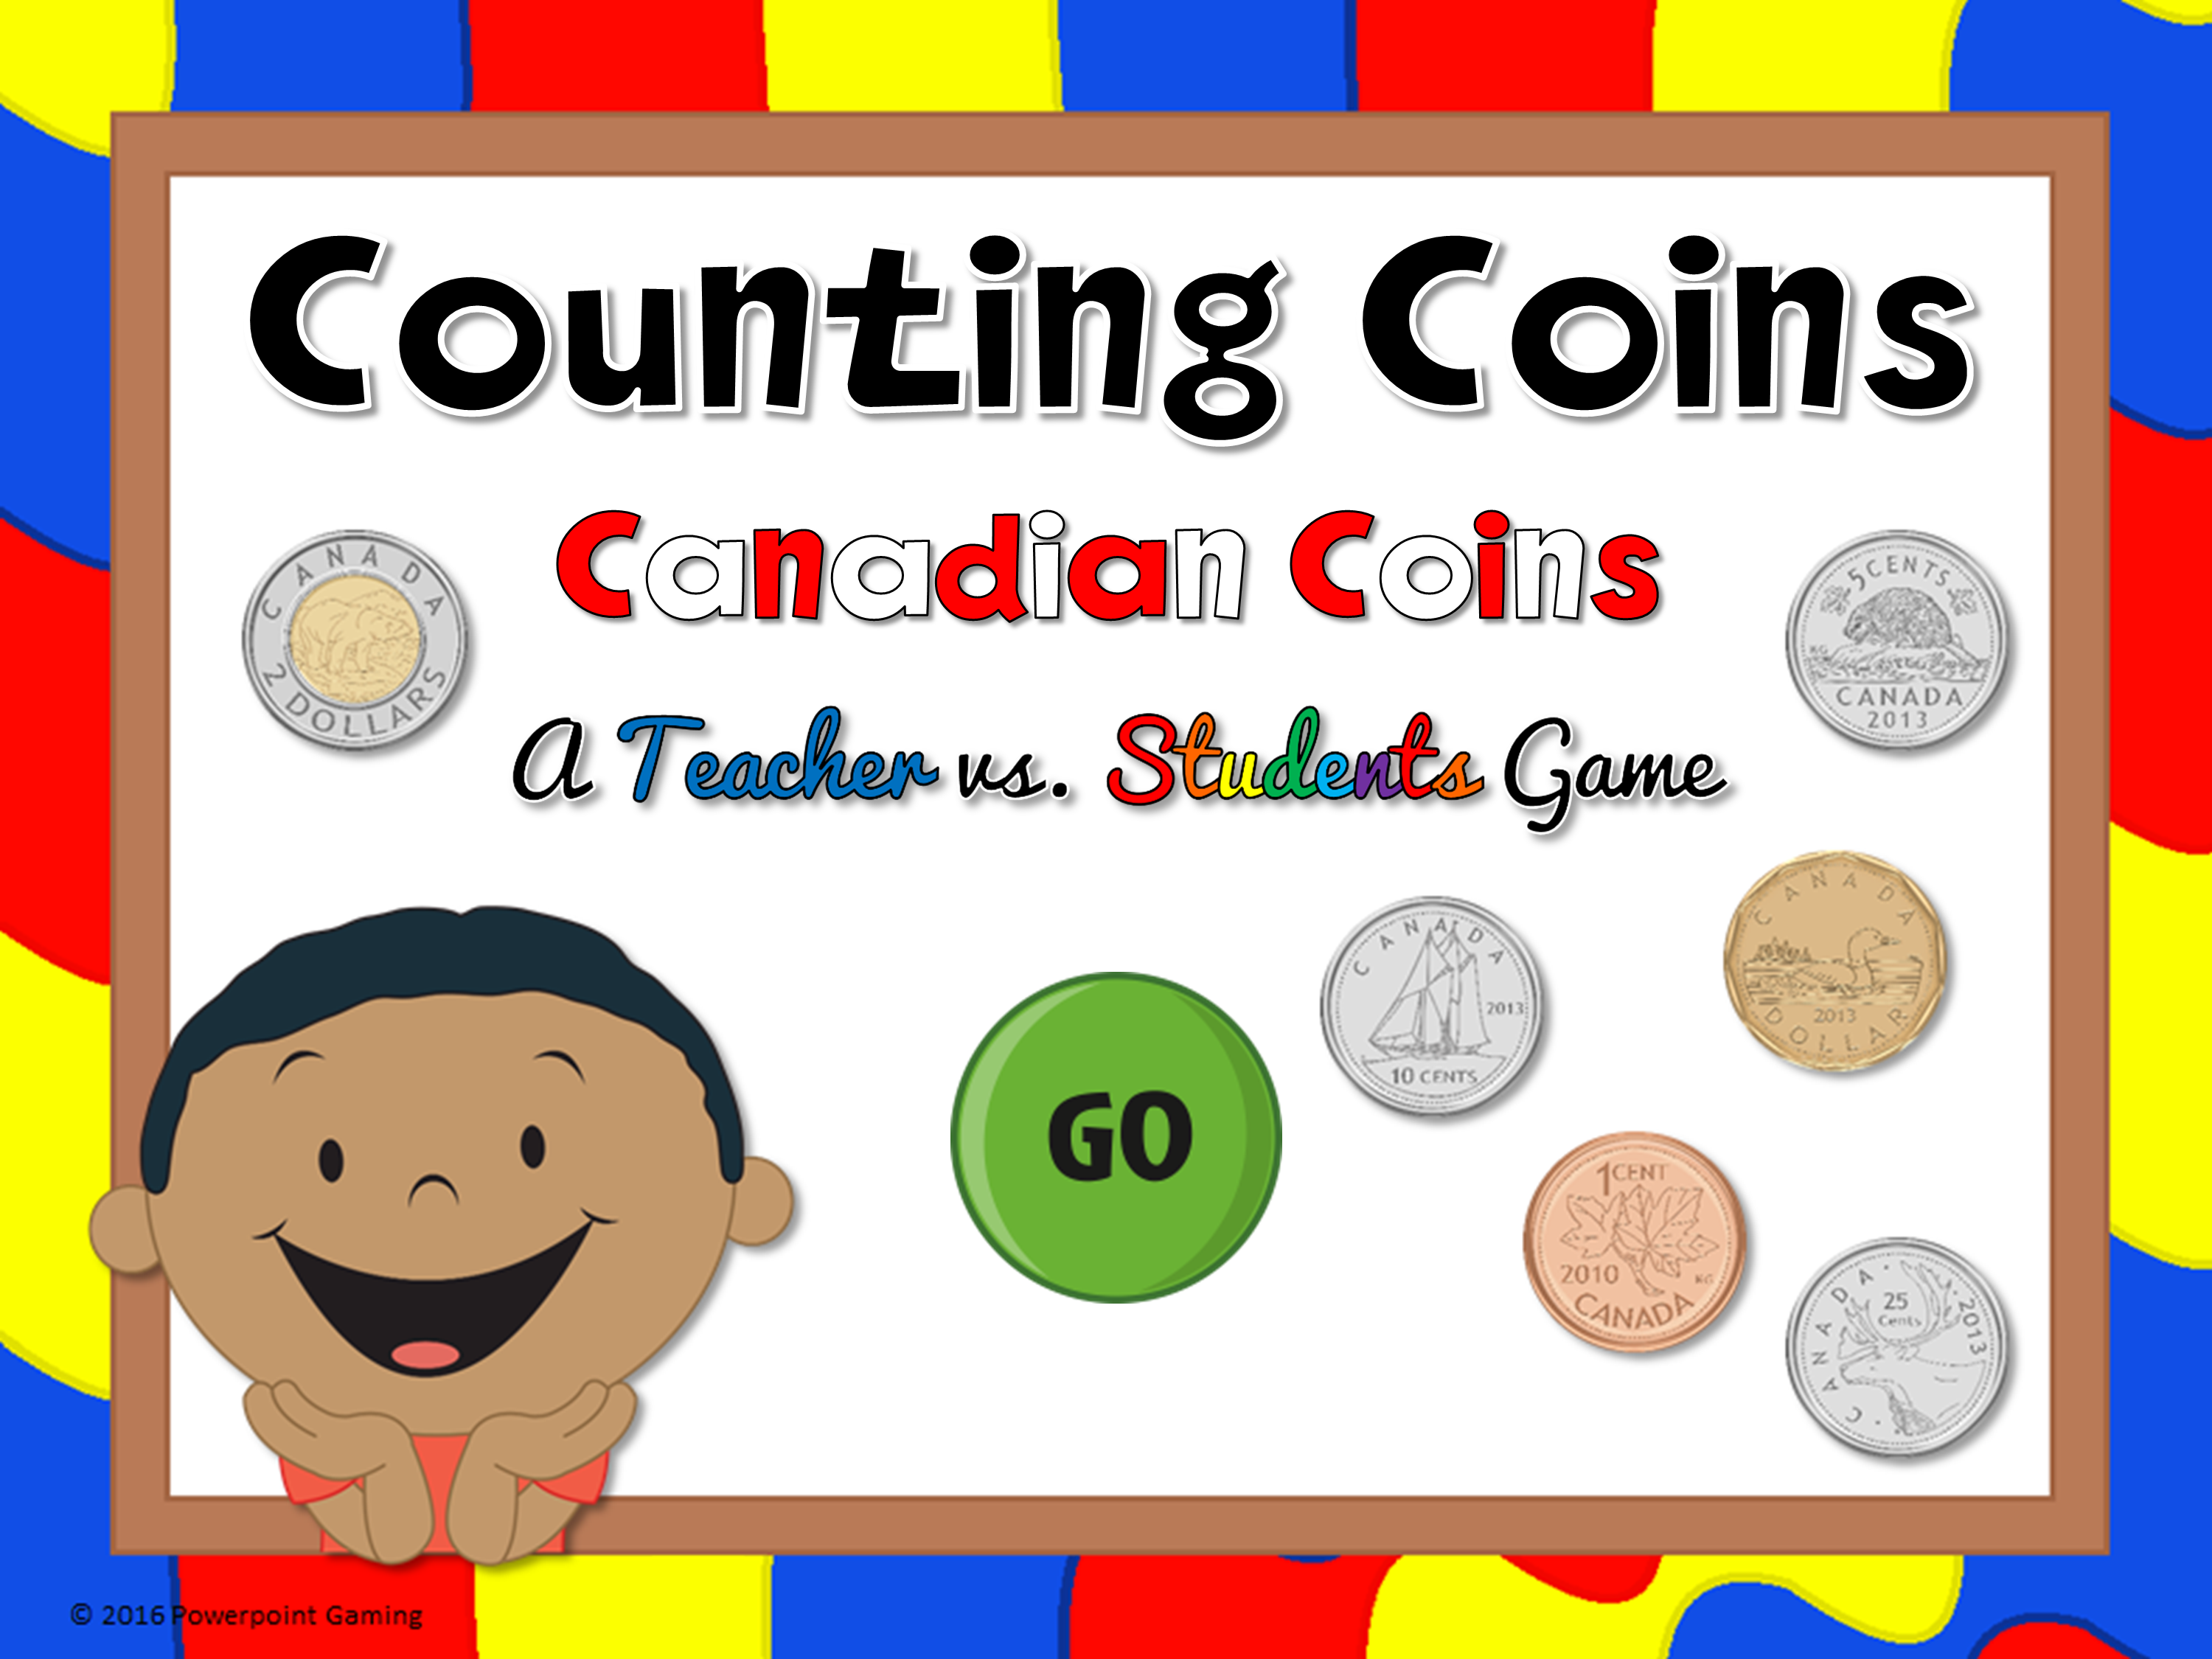 Counting Canadian Coins Teacher vs Student Game